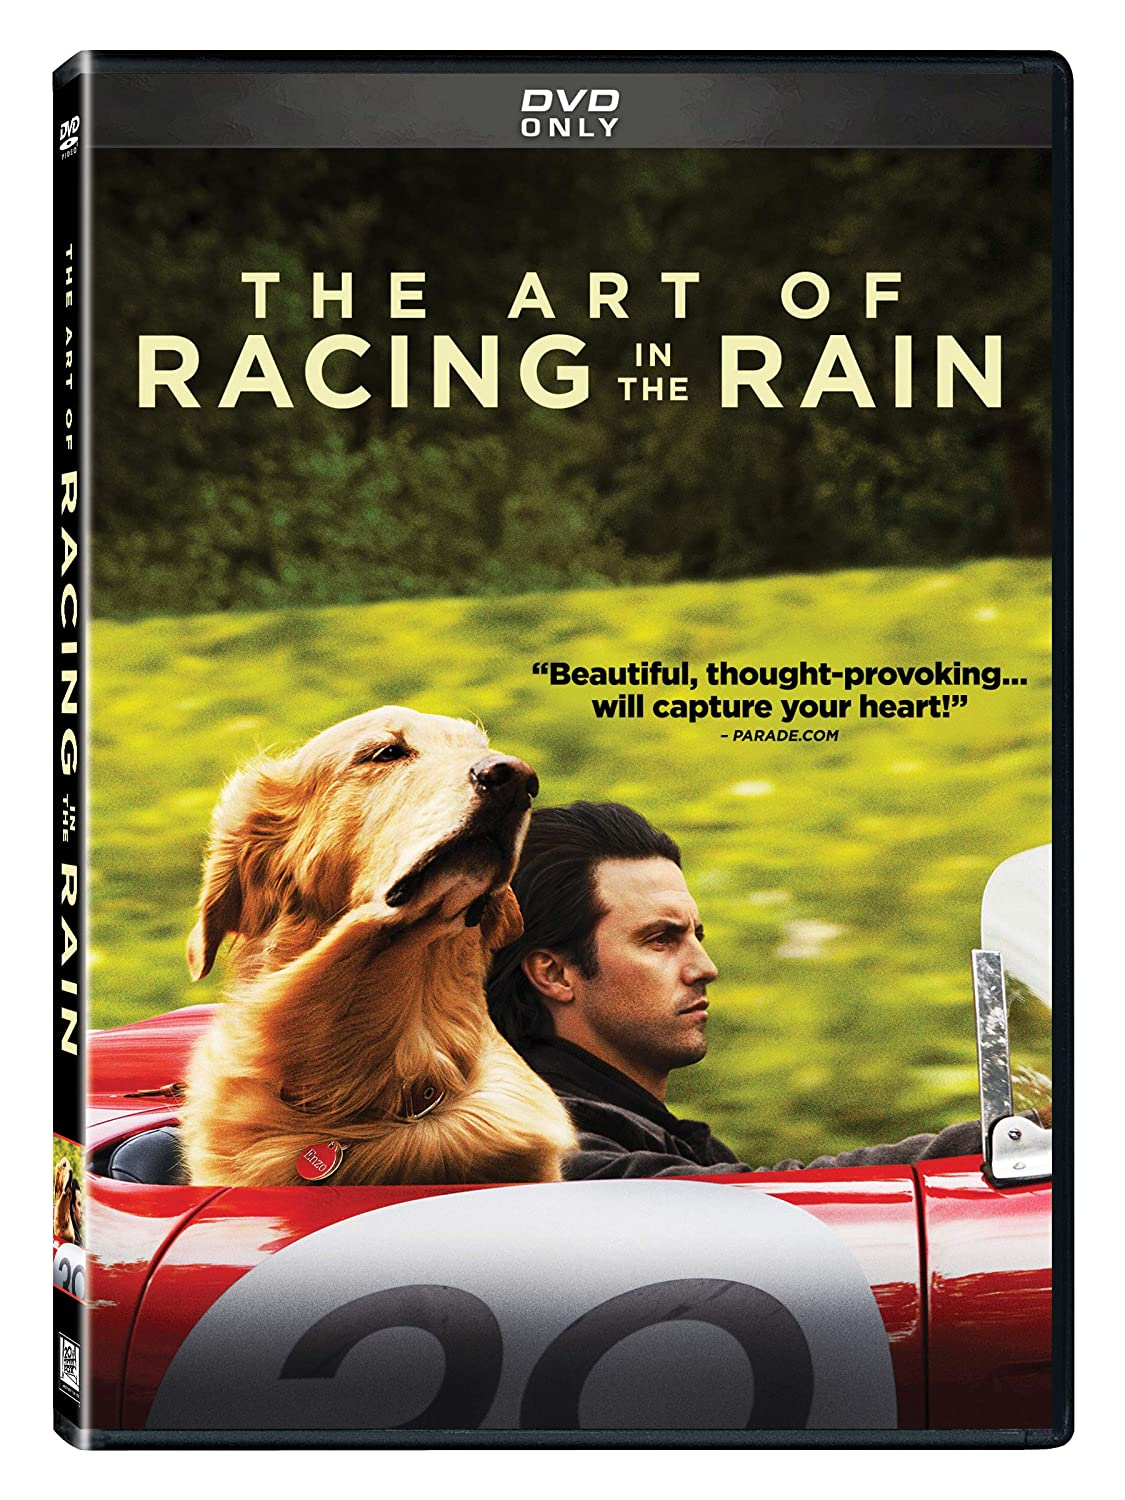 Image result for the art of racing in the rain dvd